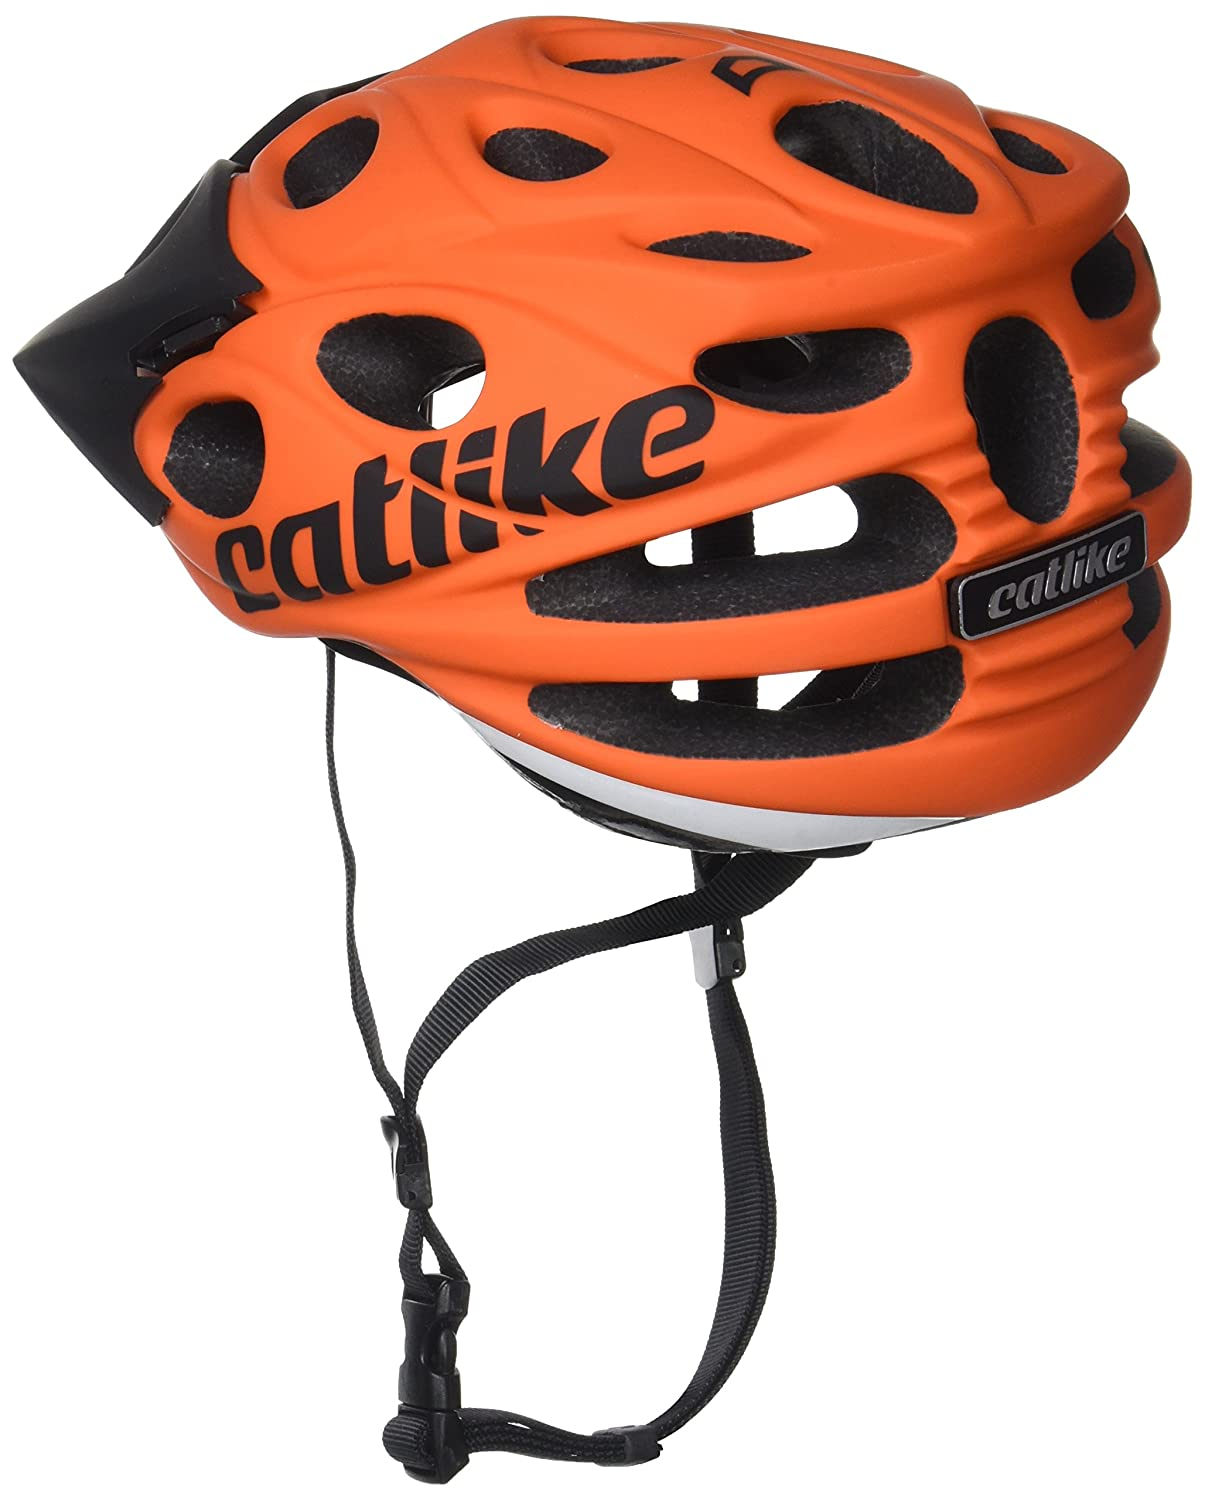 Catlike - Casco de Ciclismo de Mountain Bike Leaf: Amazon.es: Deportes y aire libre